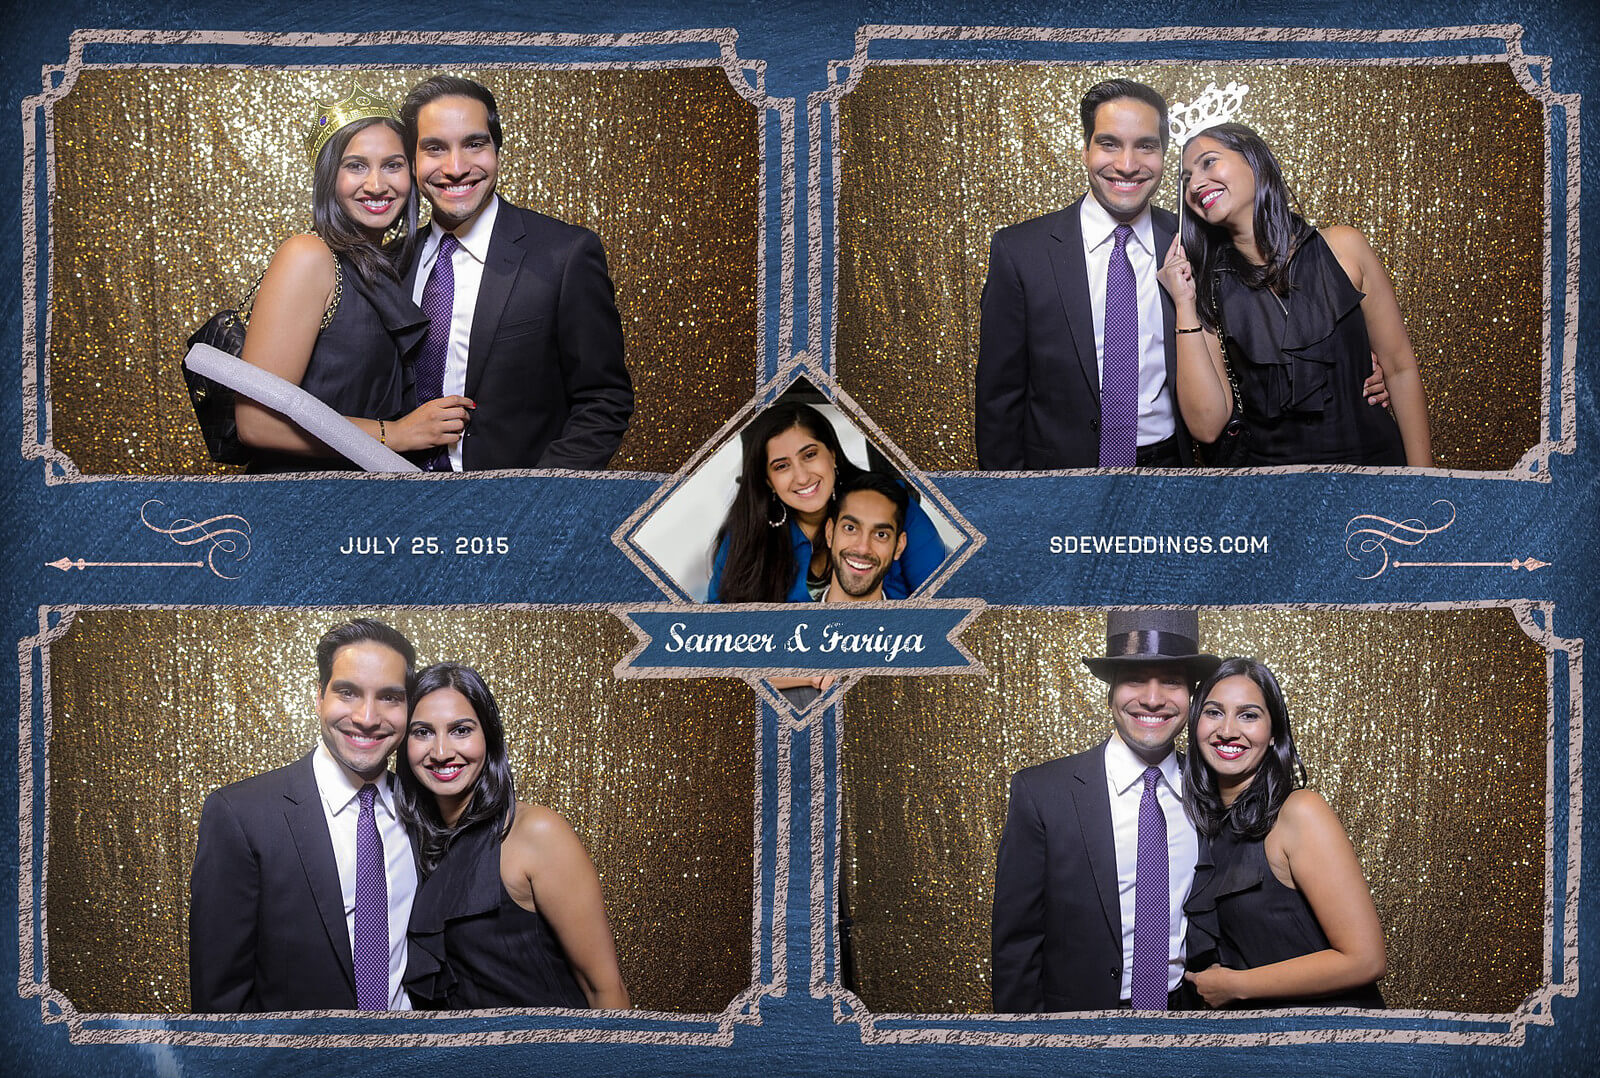 Toronto Hilton Downtown Wedding Photobooth Rental 8